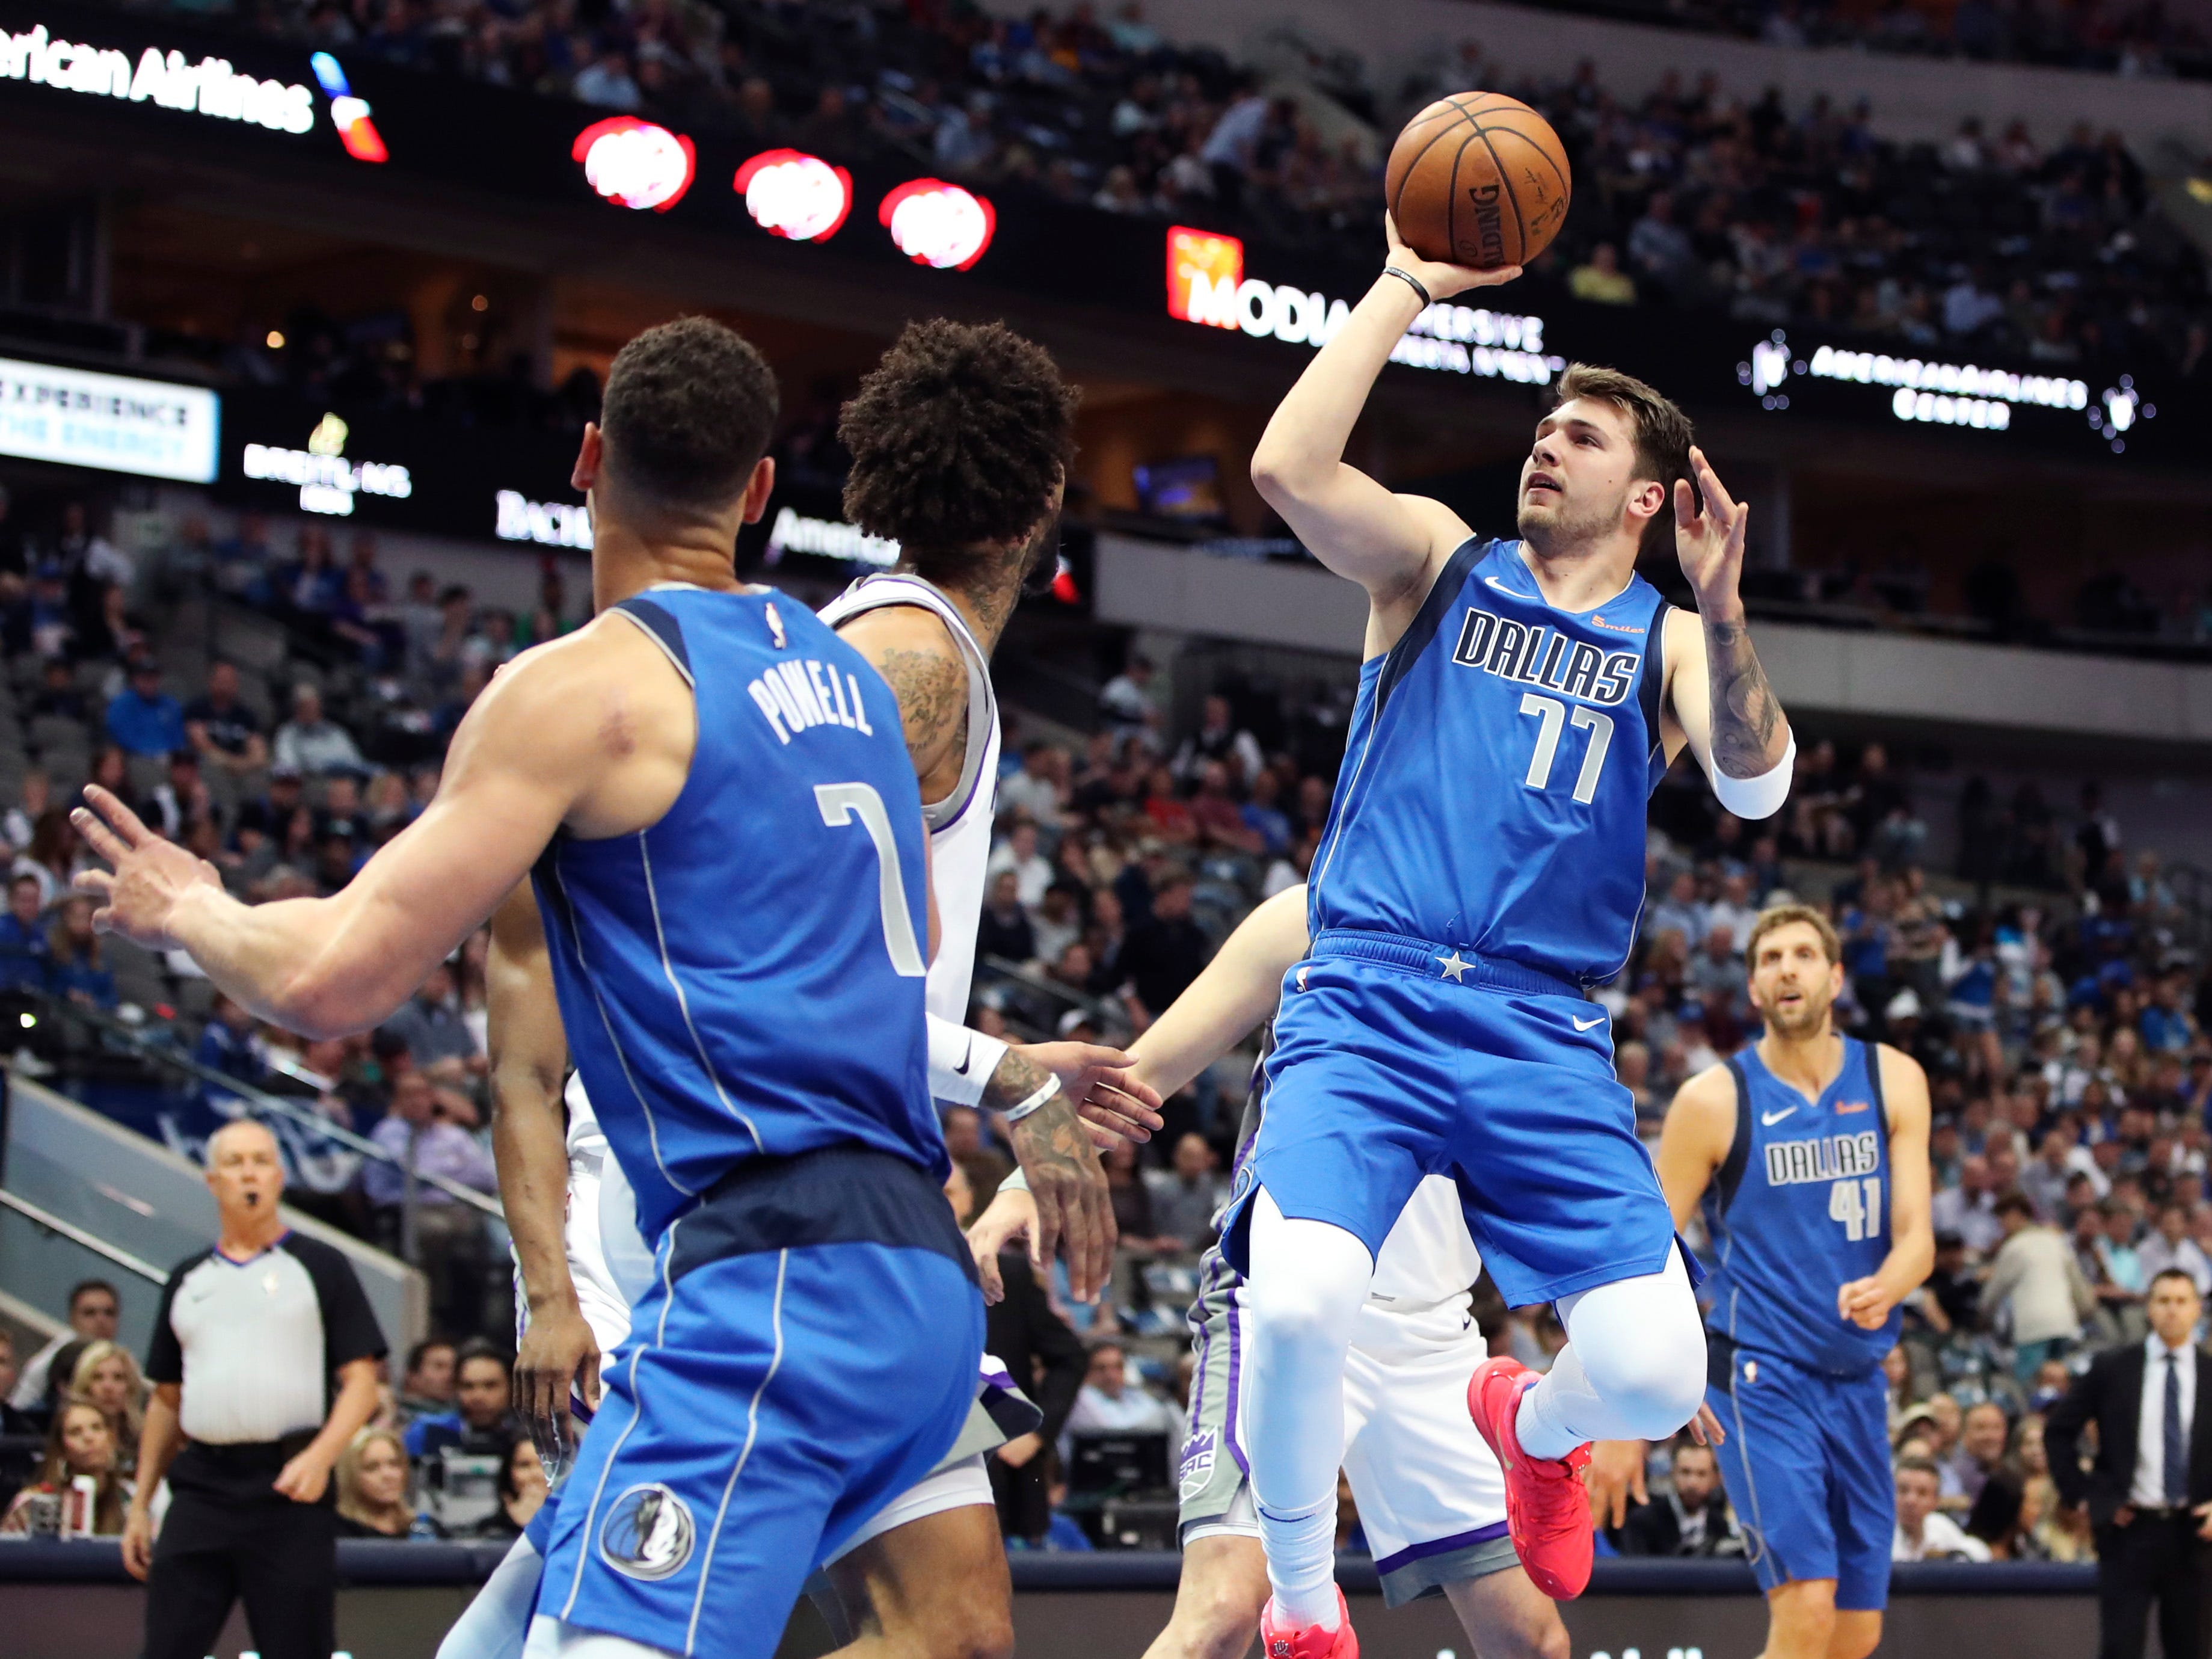 109. Luka Doncic, Mavericks (March 26): 26 points, 12 rebounds, 12 assists in 125-121 loss to Kings.